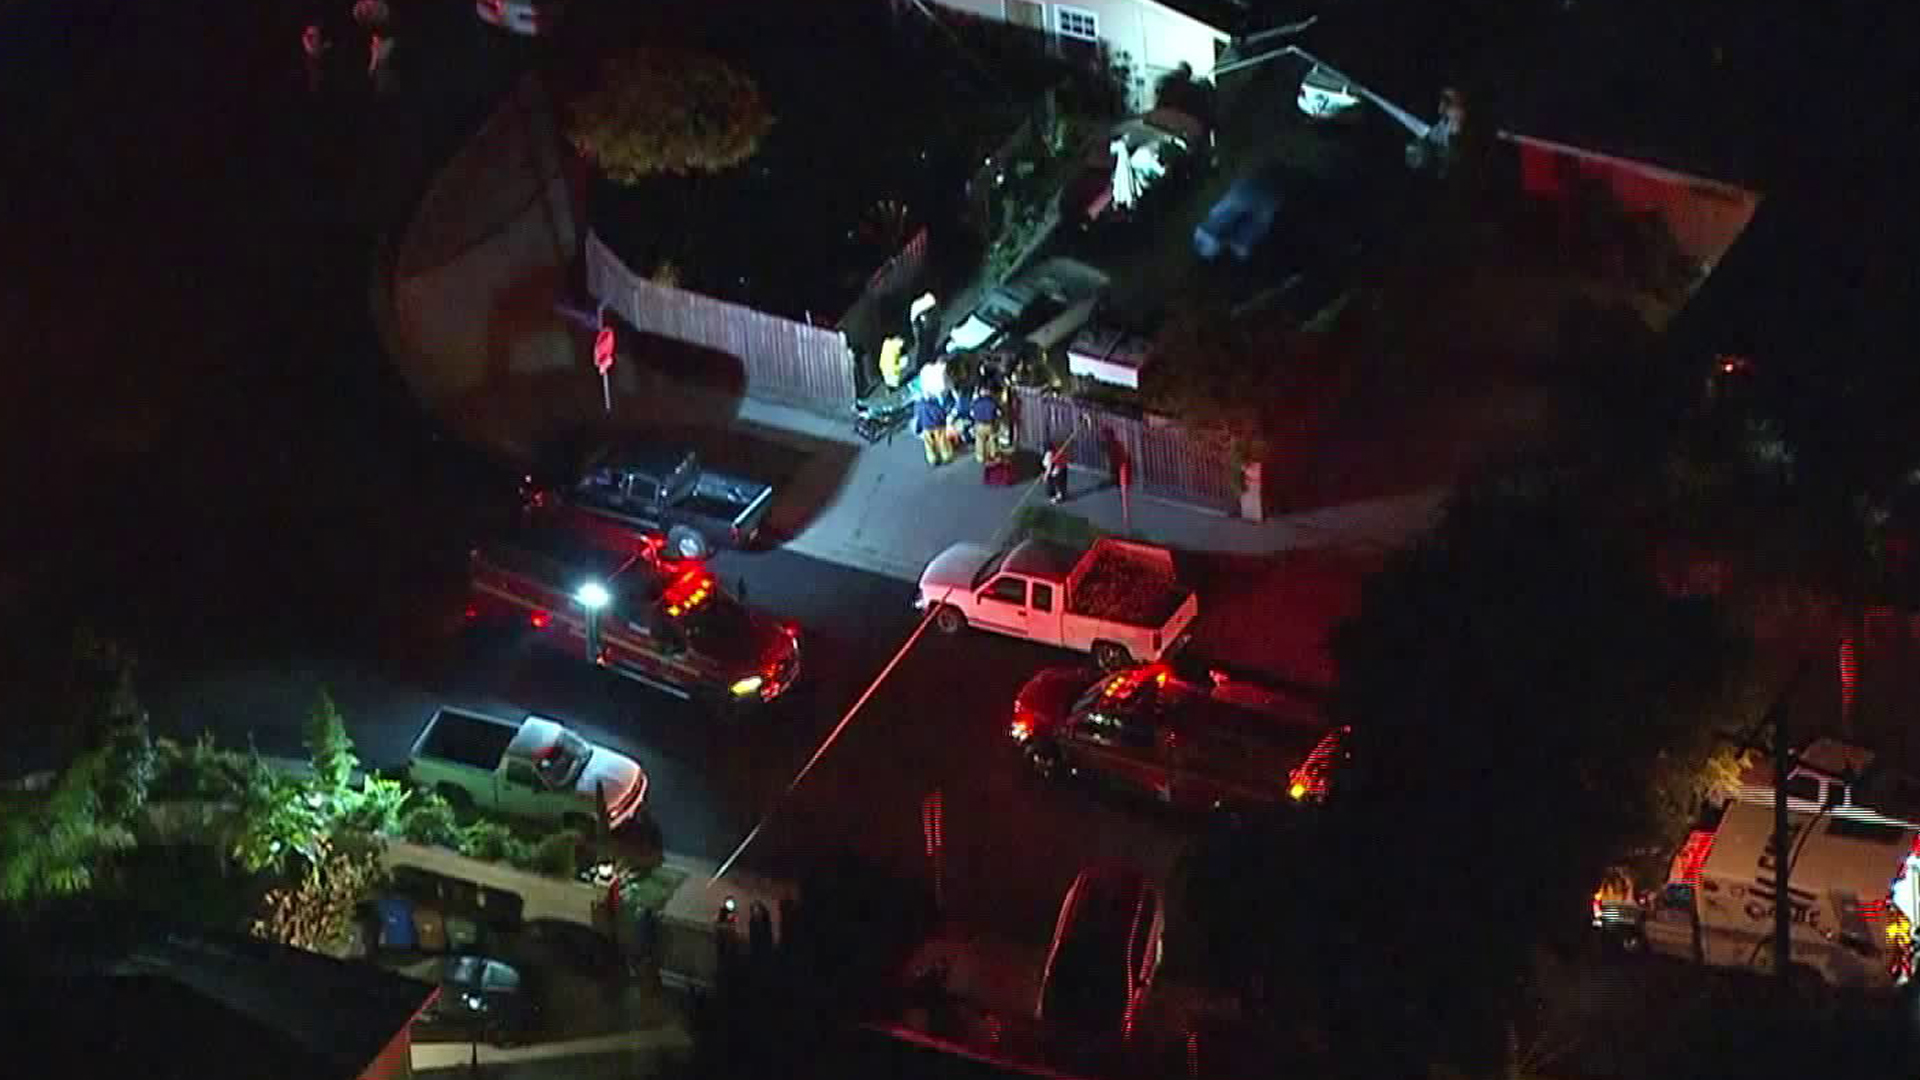 Deputies and firefighters work at the scene of a shooting that left one man dead and another wounded at Winton Avenue and Gemini Street in La Puente on June 28, 2019. (Credit: KTLA)